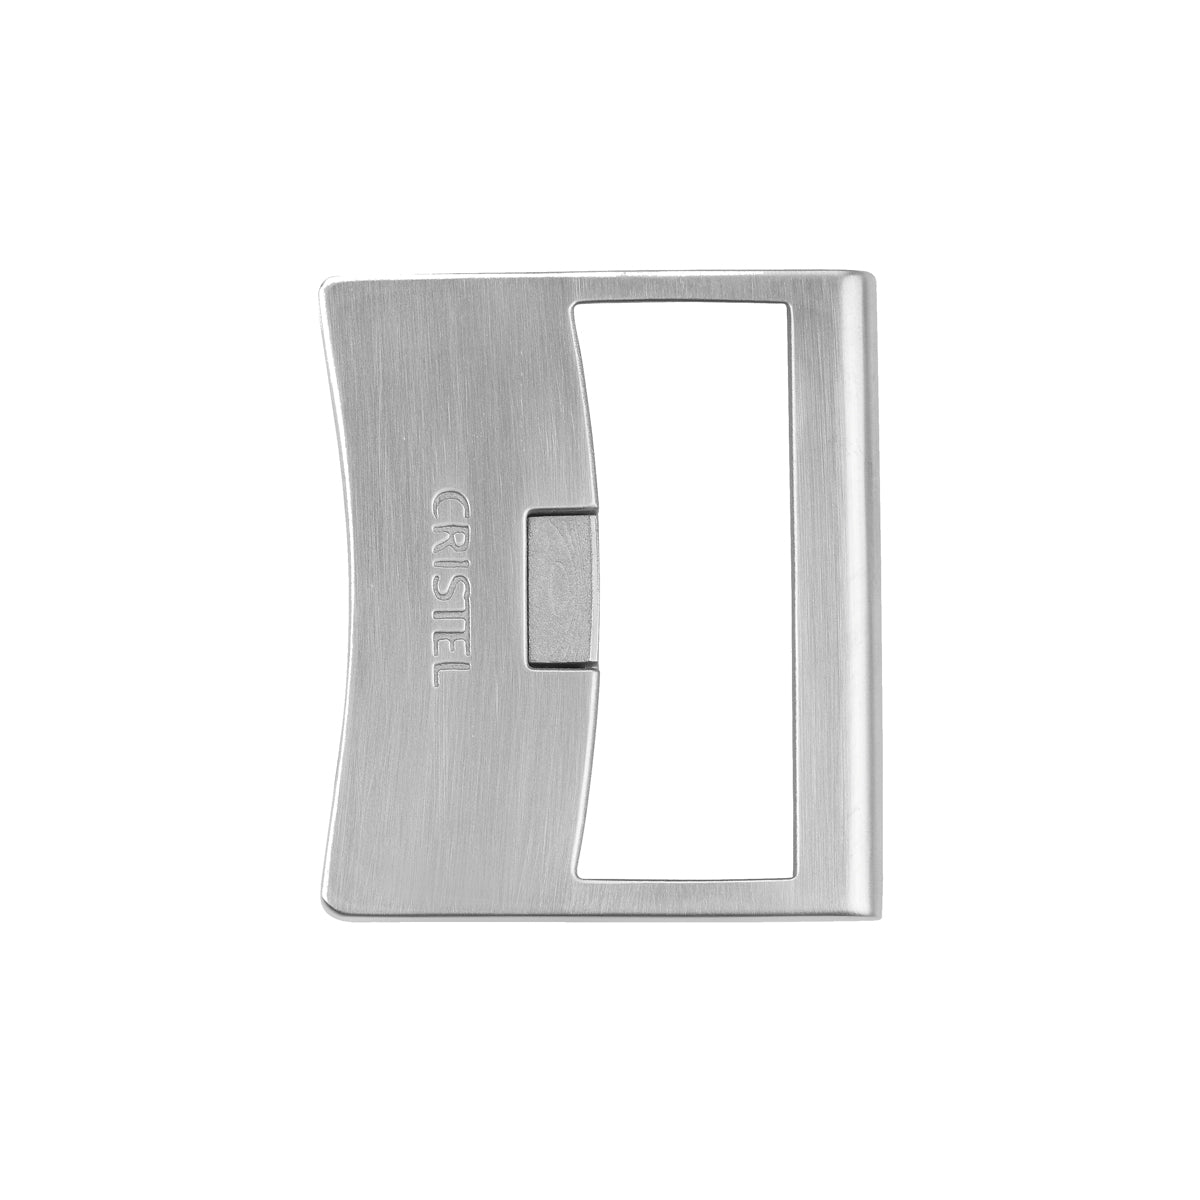 Cristel Strate Stainless Steel Side Handle